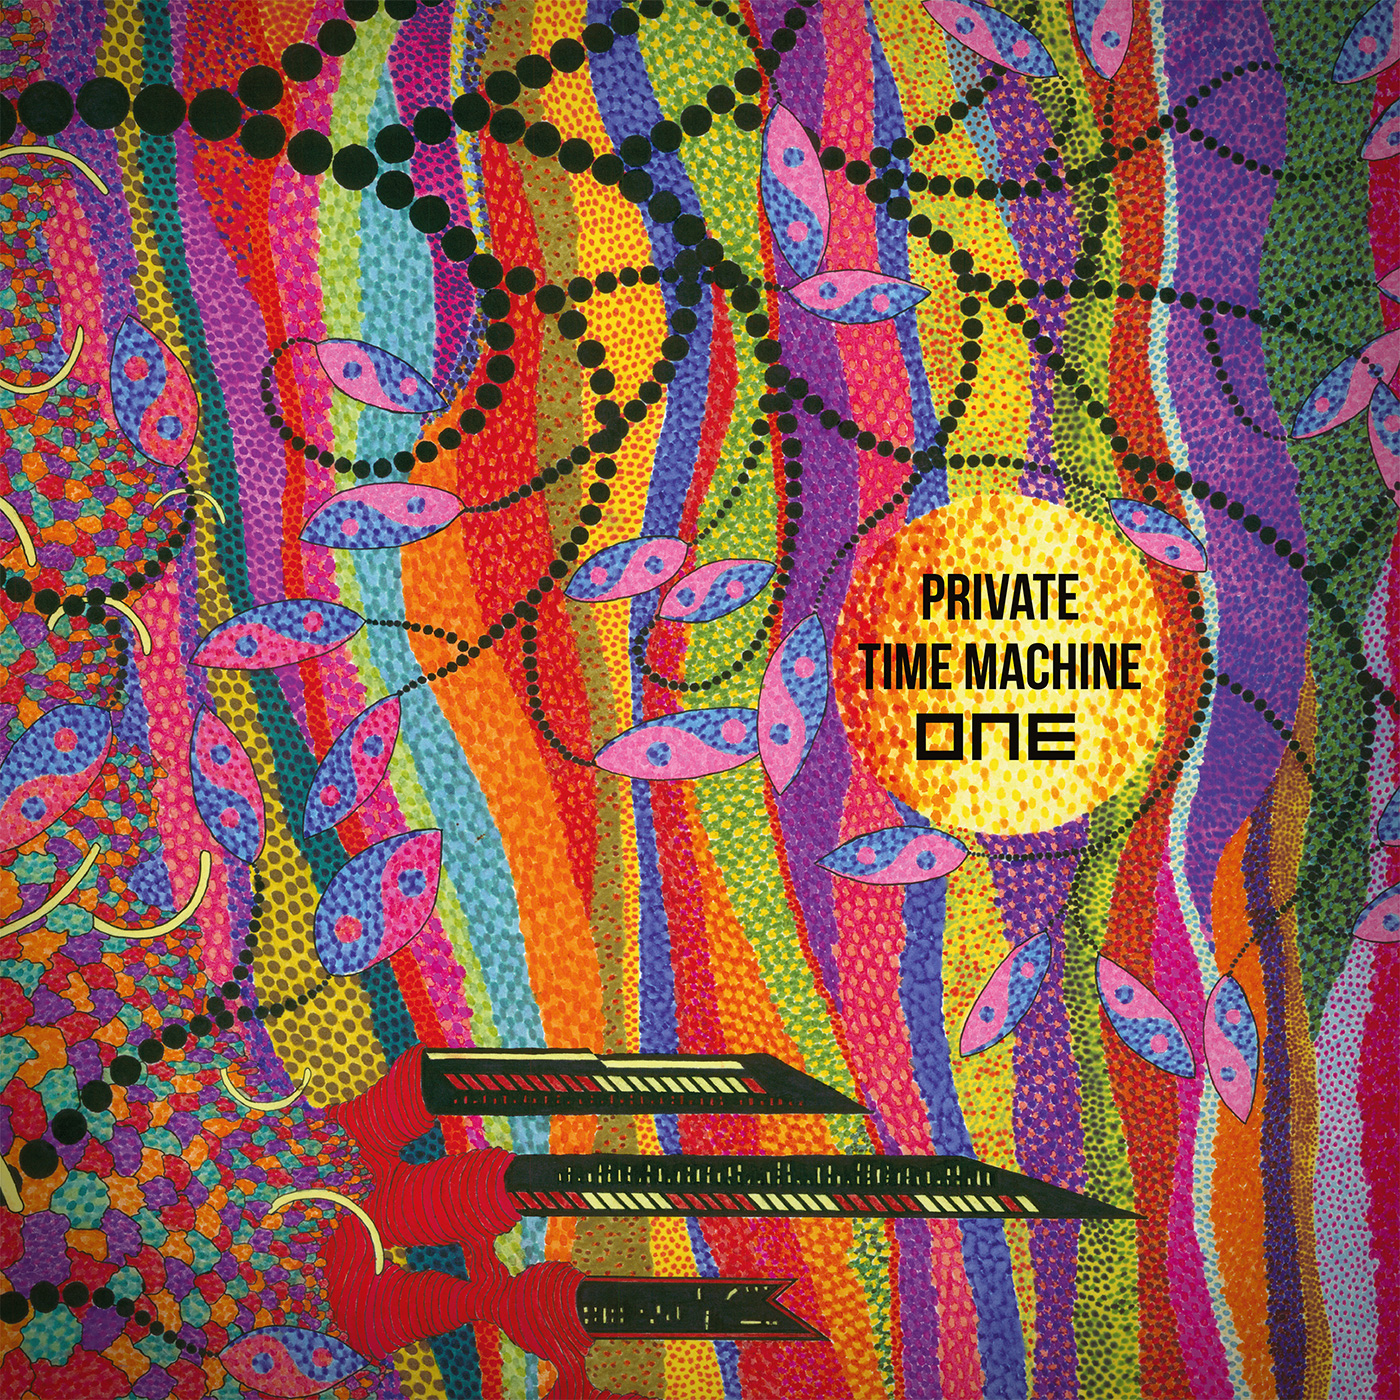 Private Time machine ONE